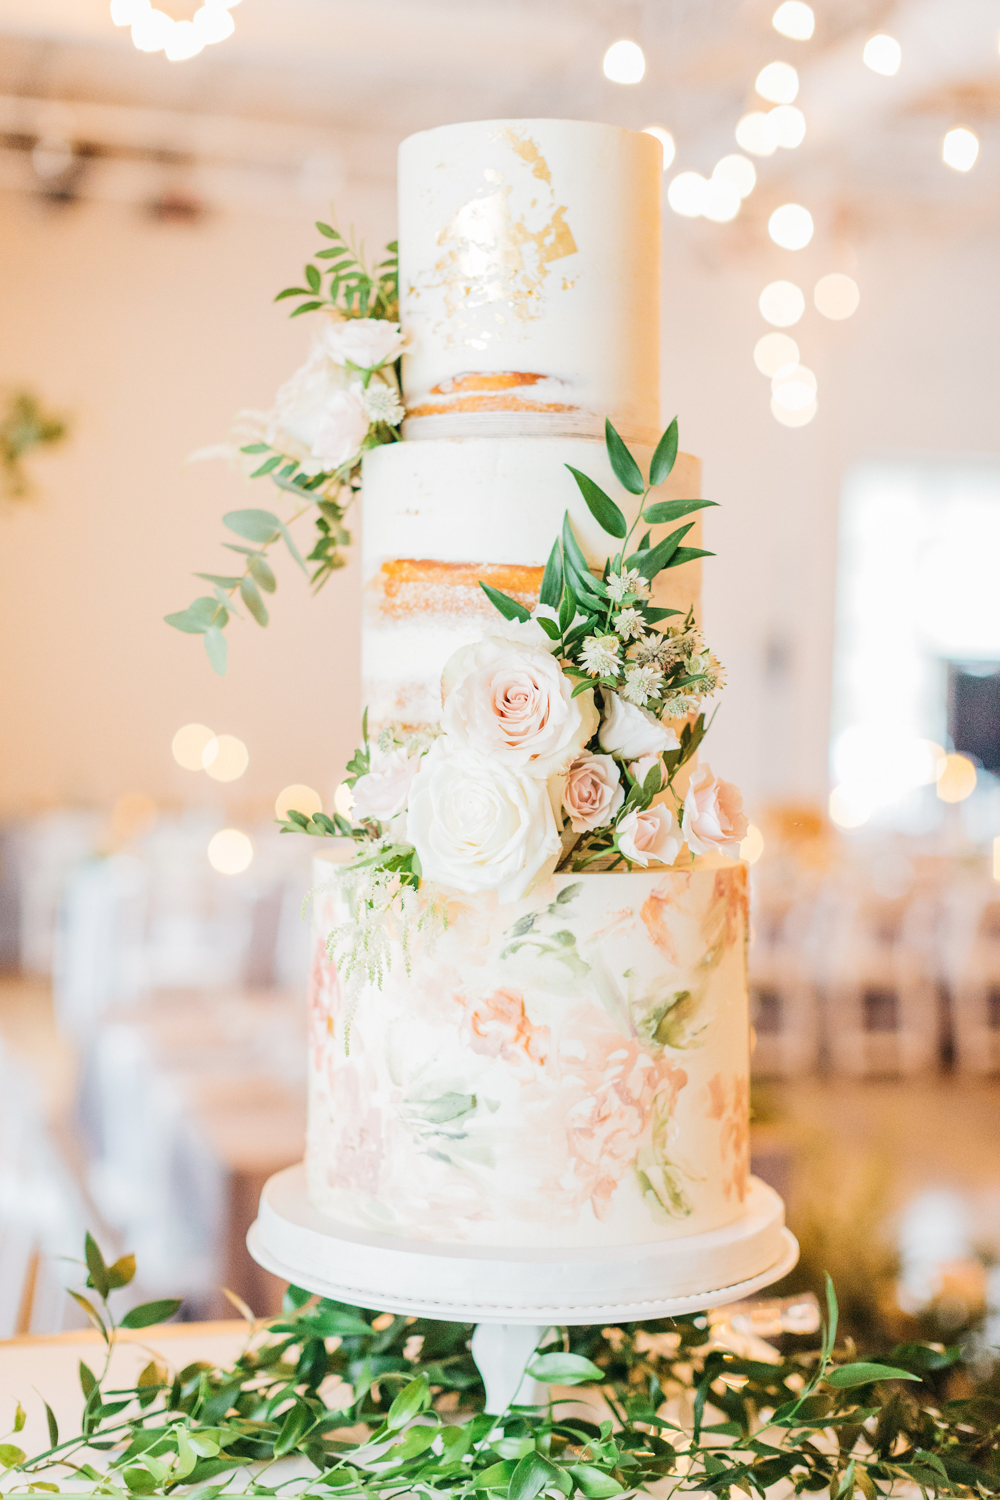 Wedding cake at The Glass Factory